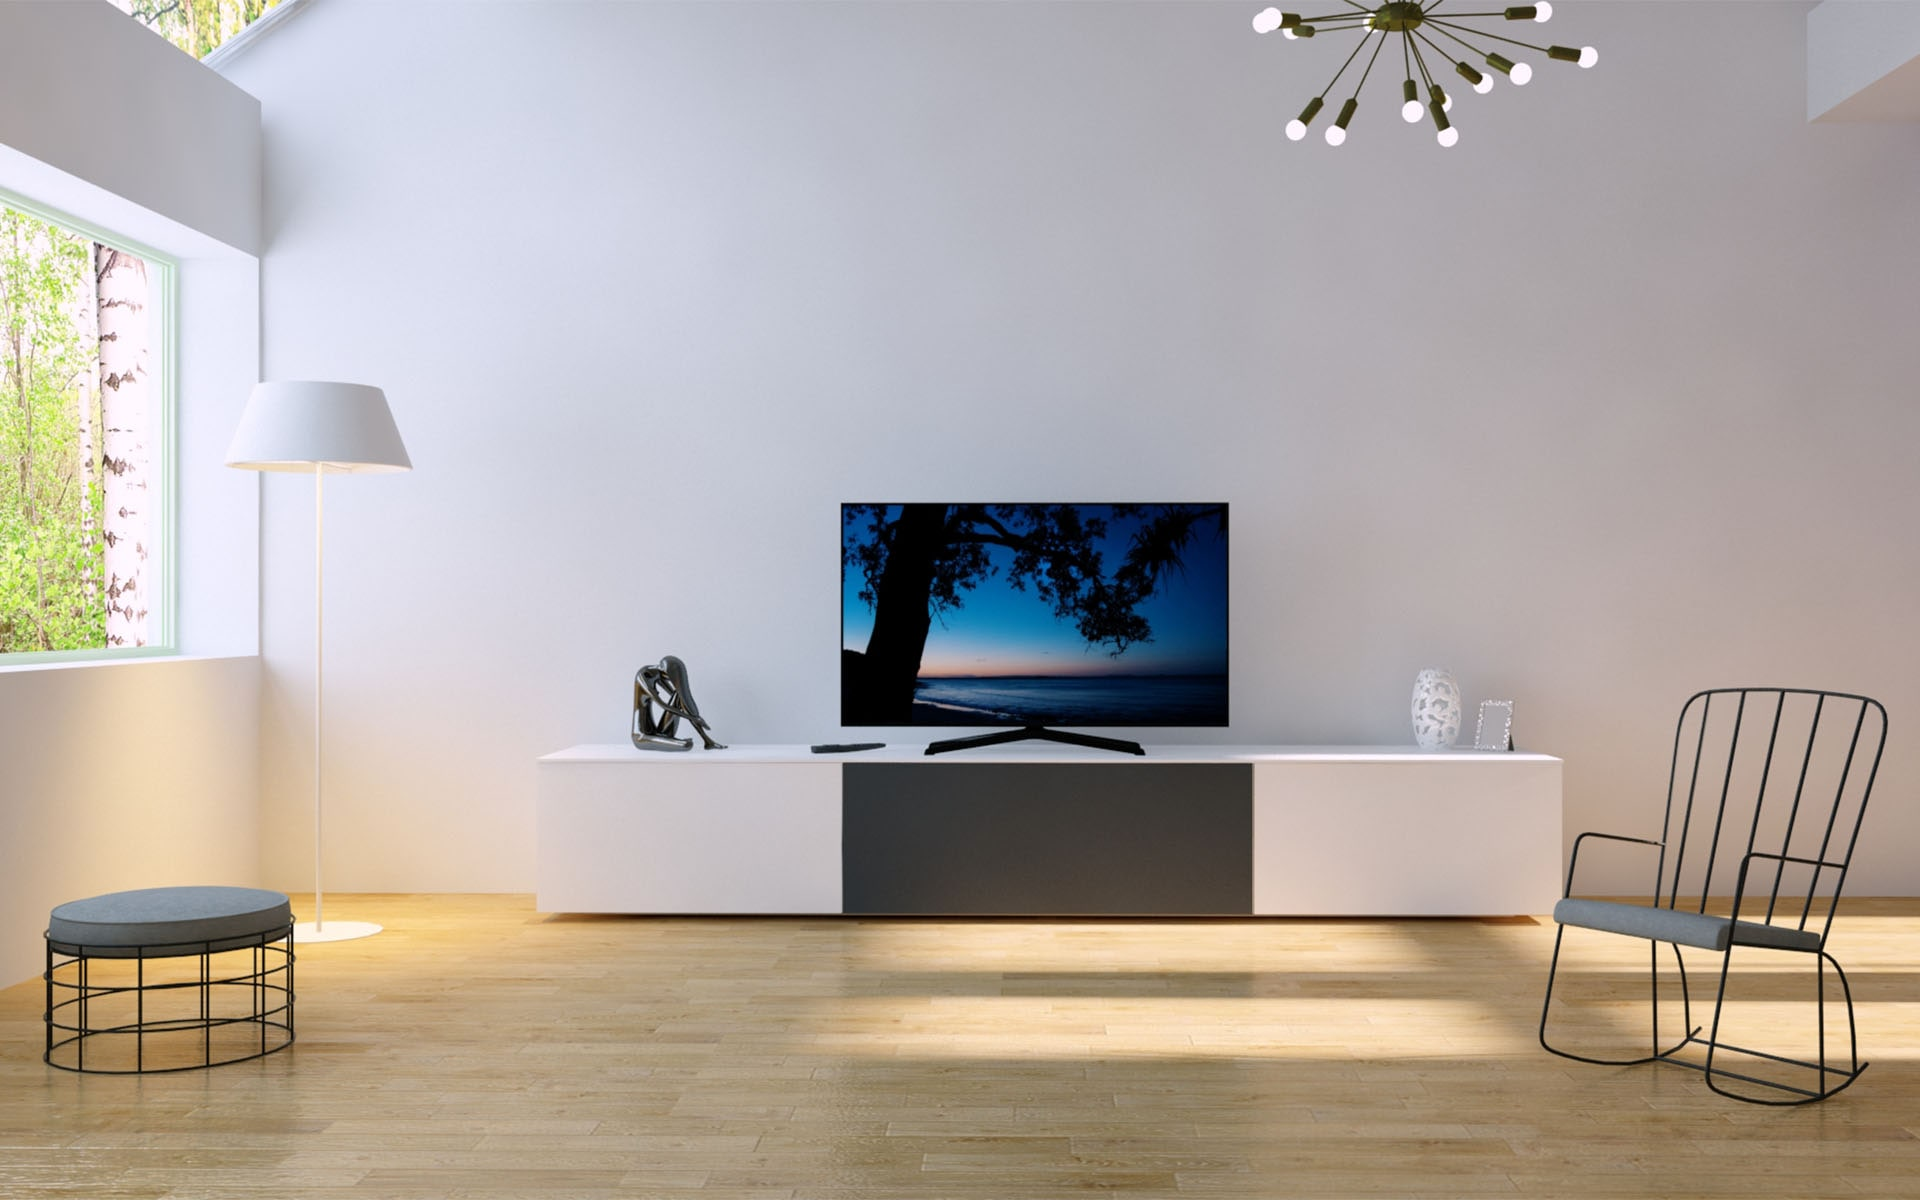 Tv Kast Op Maat Tv Kast Voor Home Cinema Soundsysteem